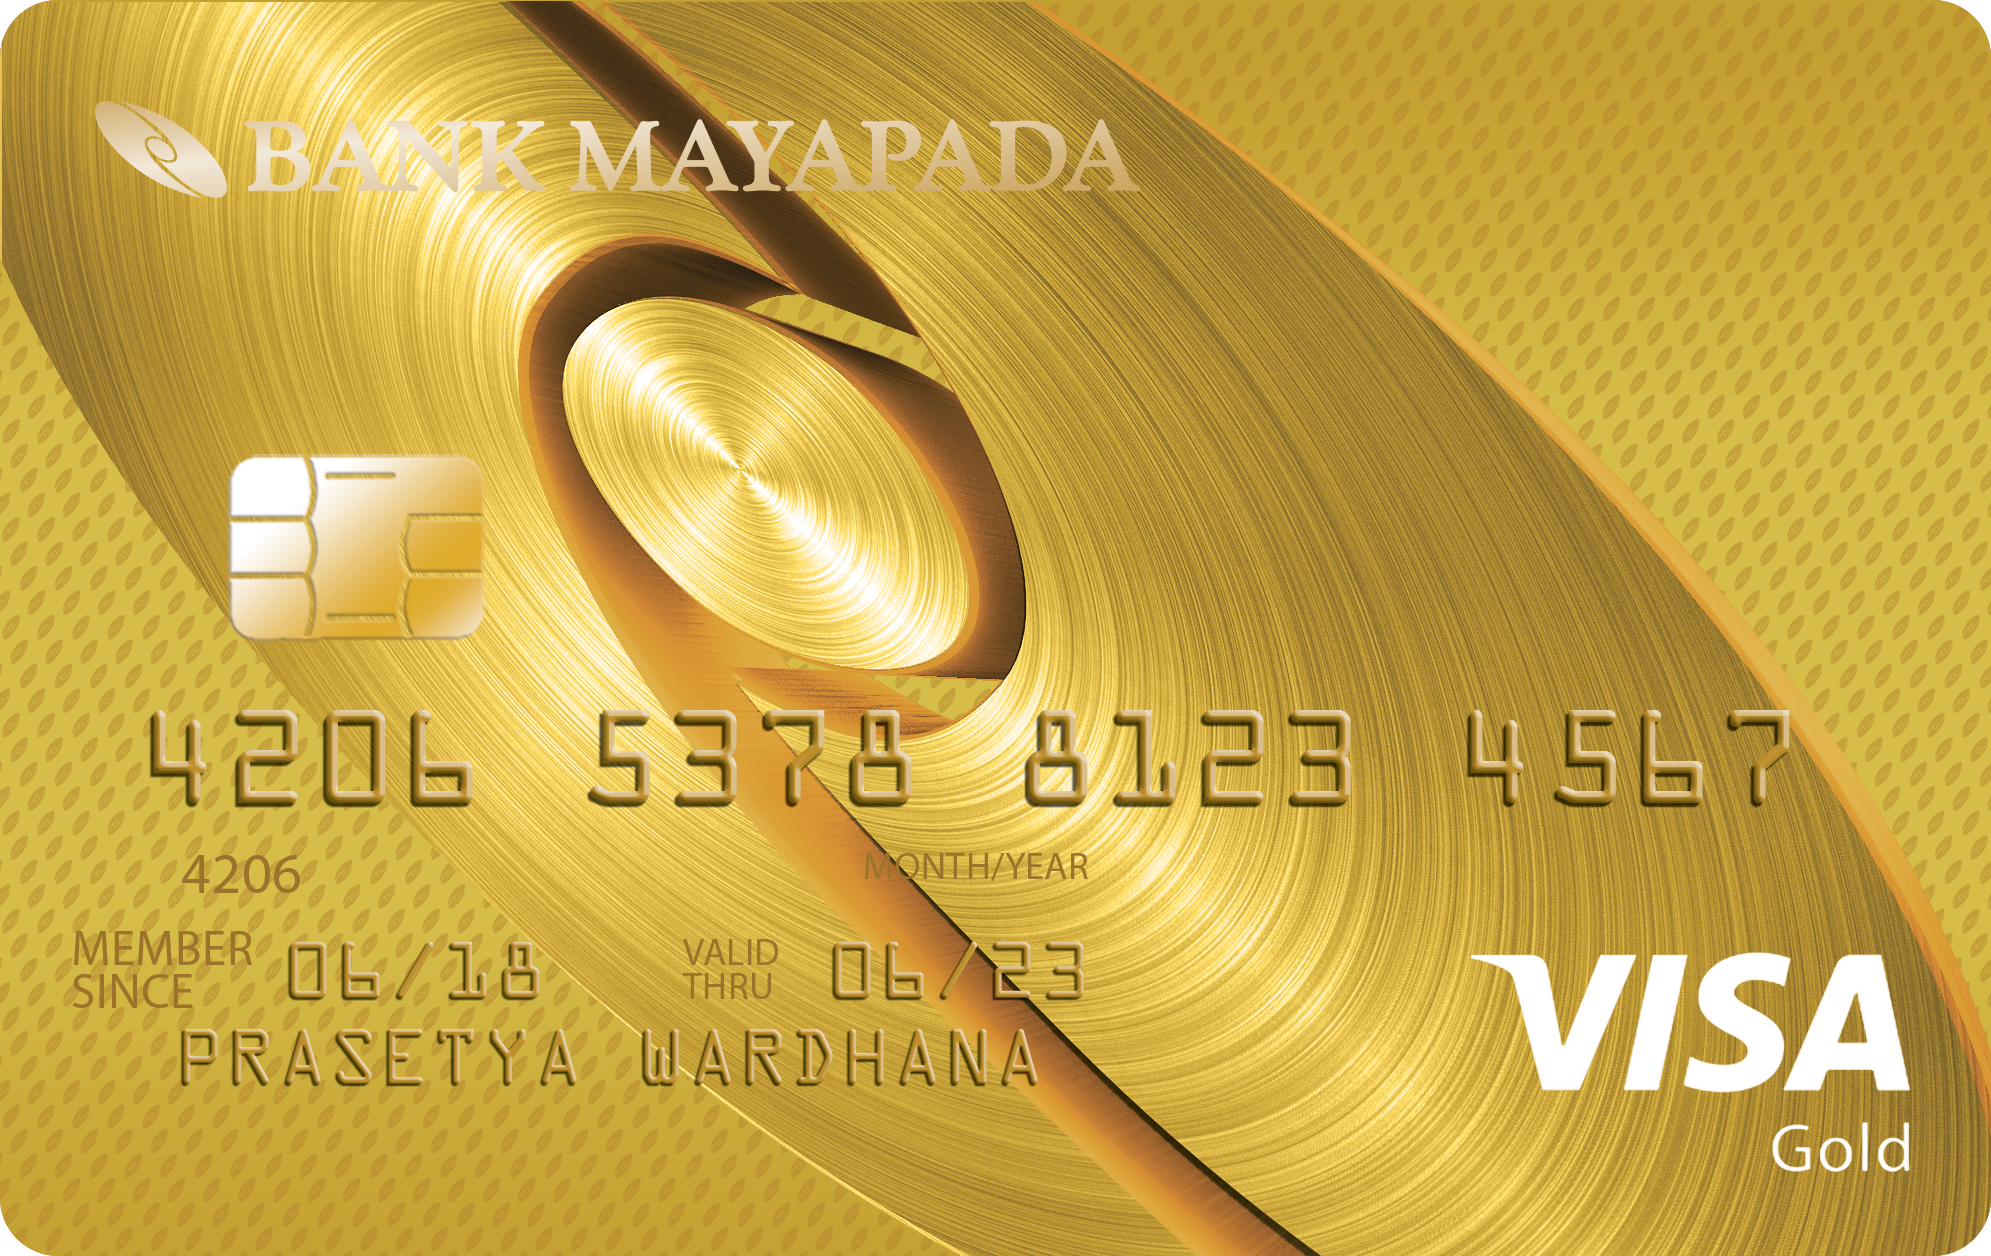 My Gold Card